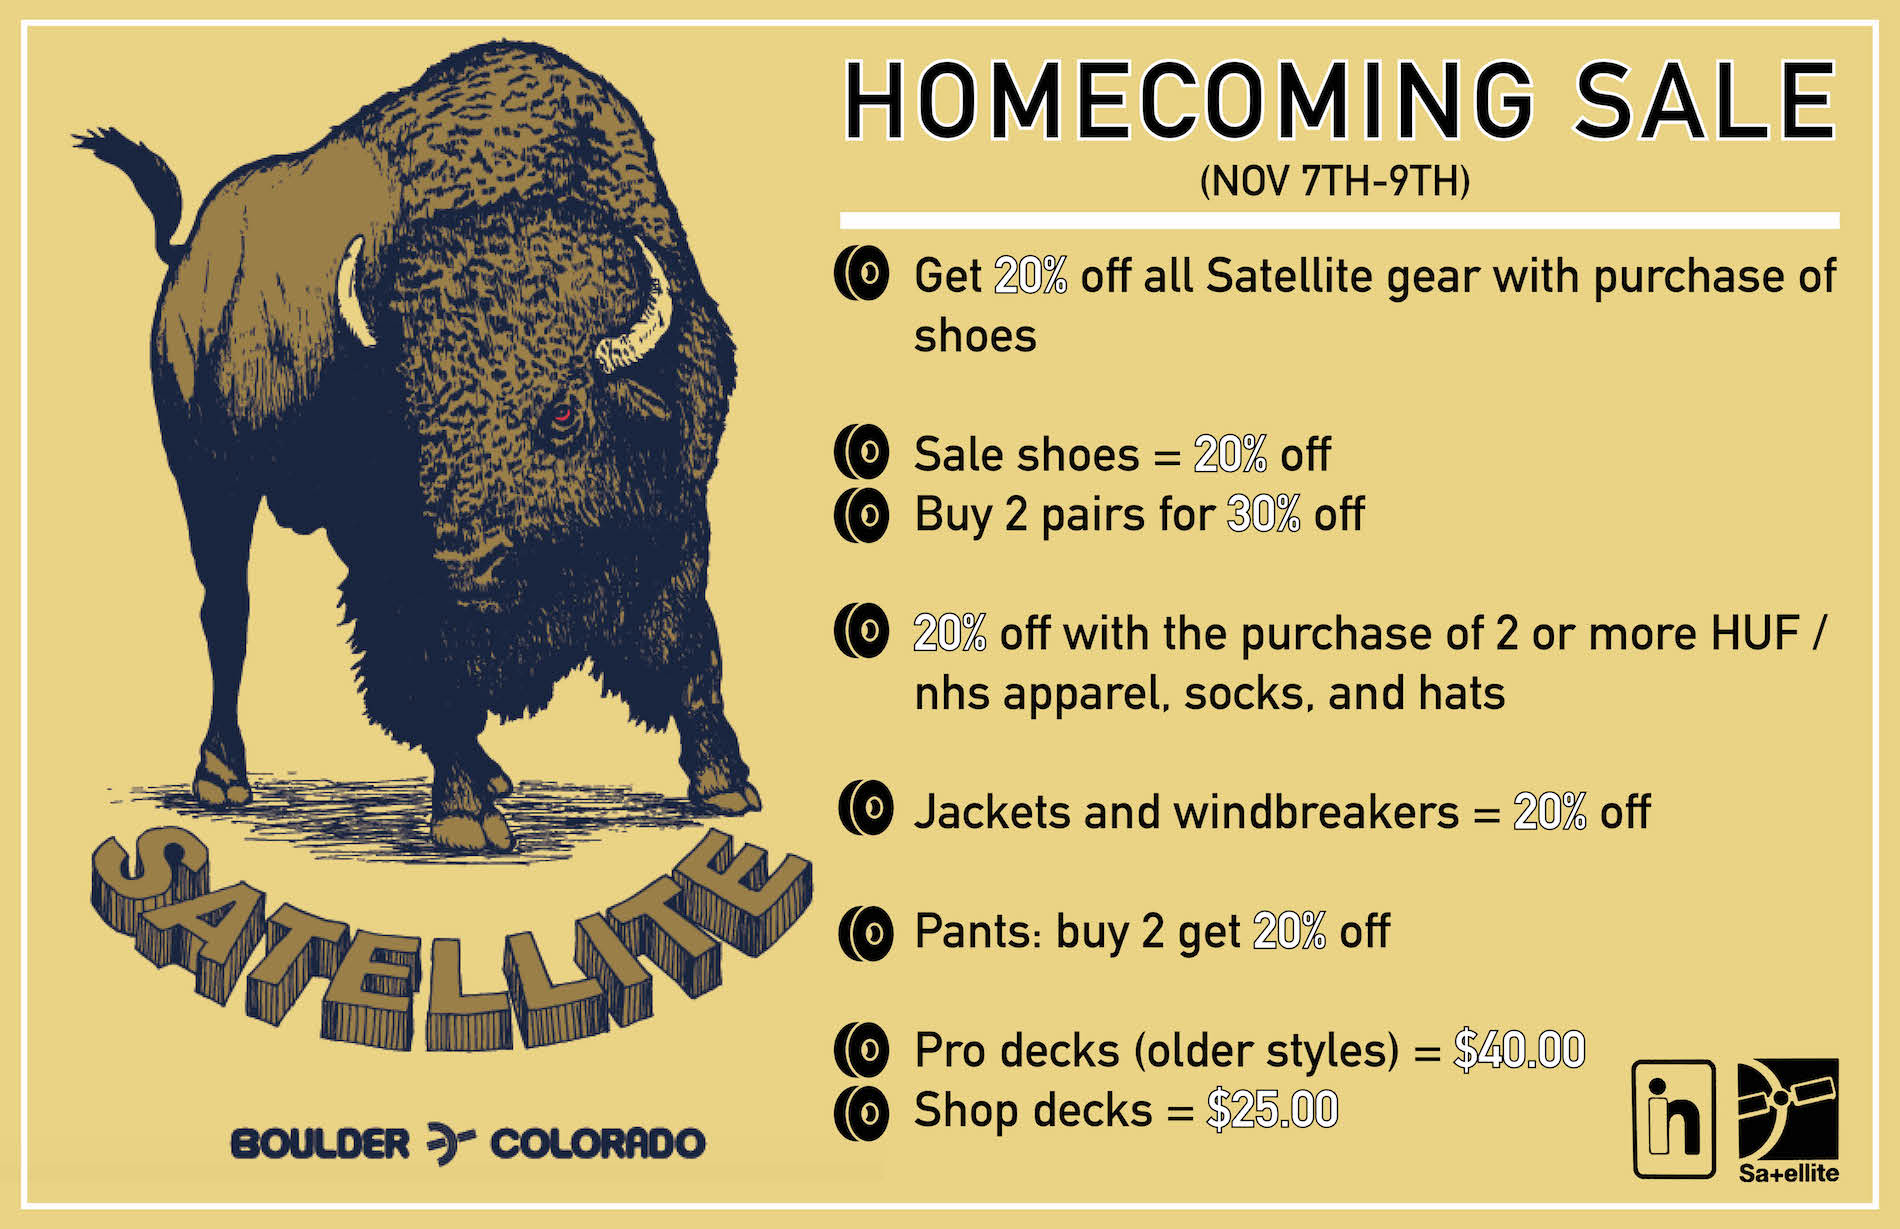 Satellite Homecoming Sale Banner1.jpg